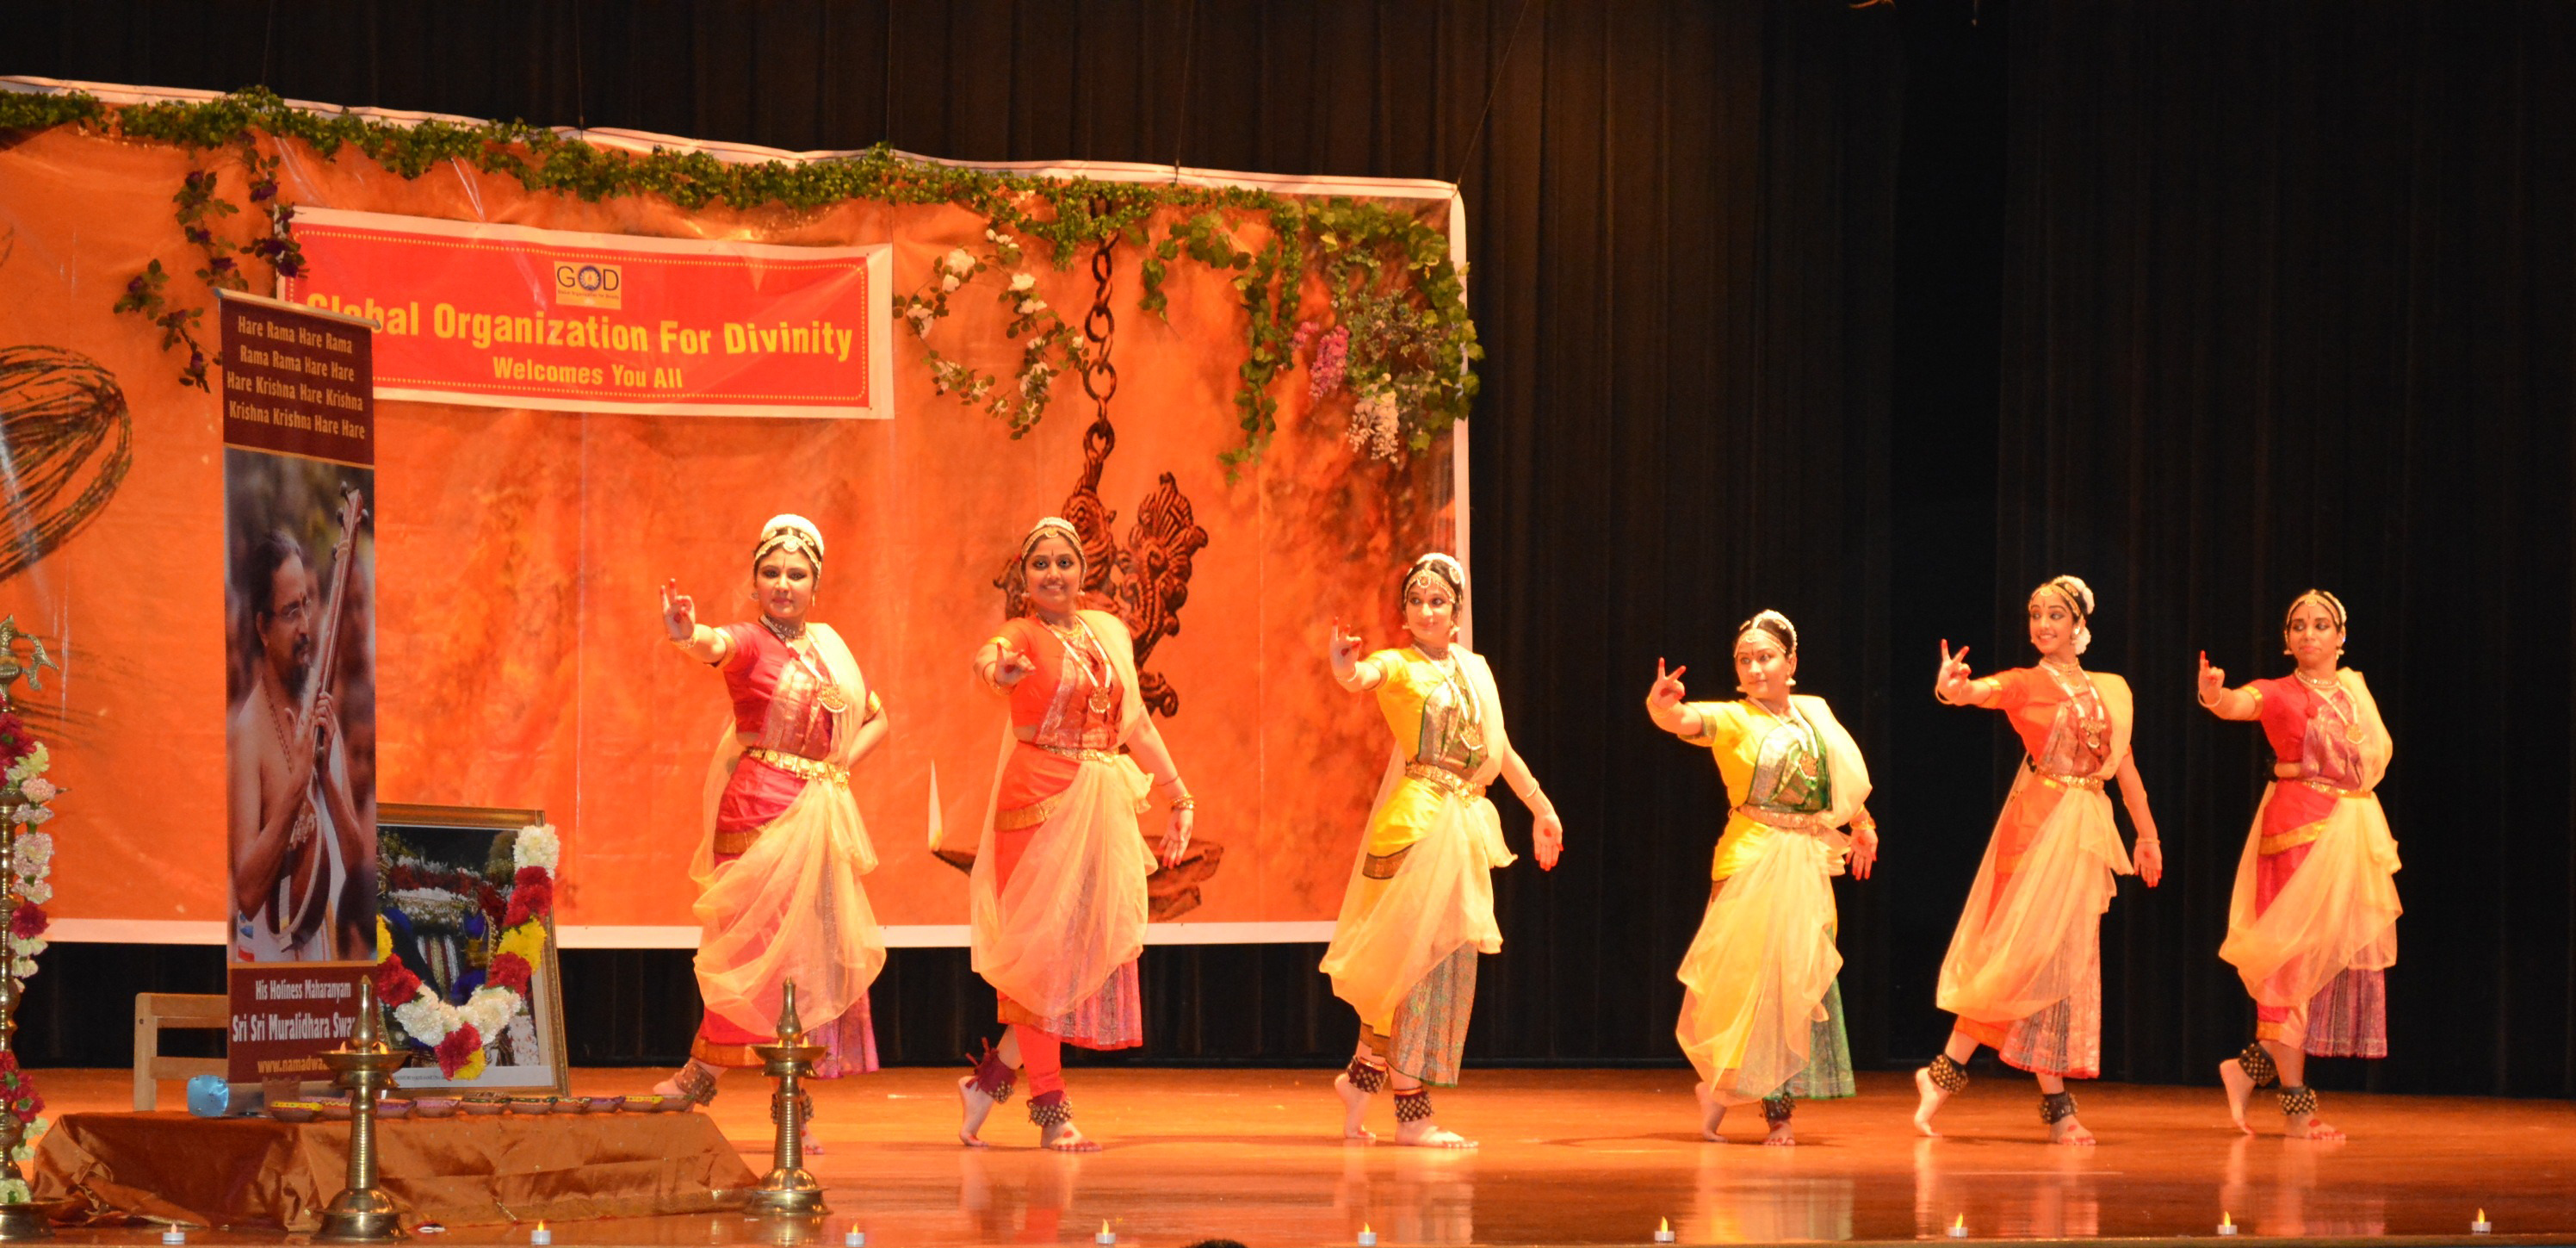 6 ballet dancers dance on stage in colorful garb